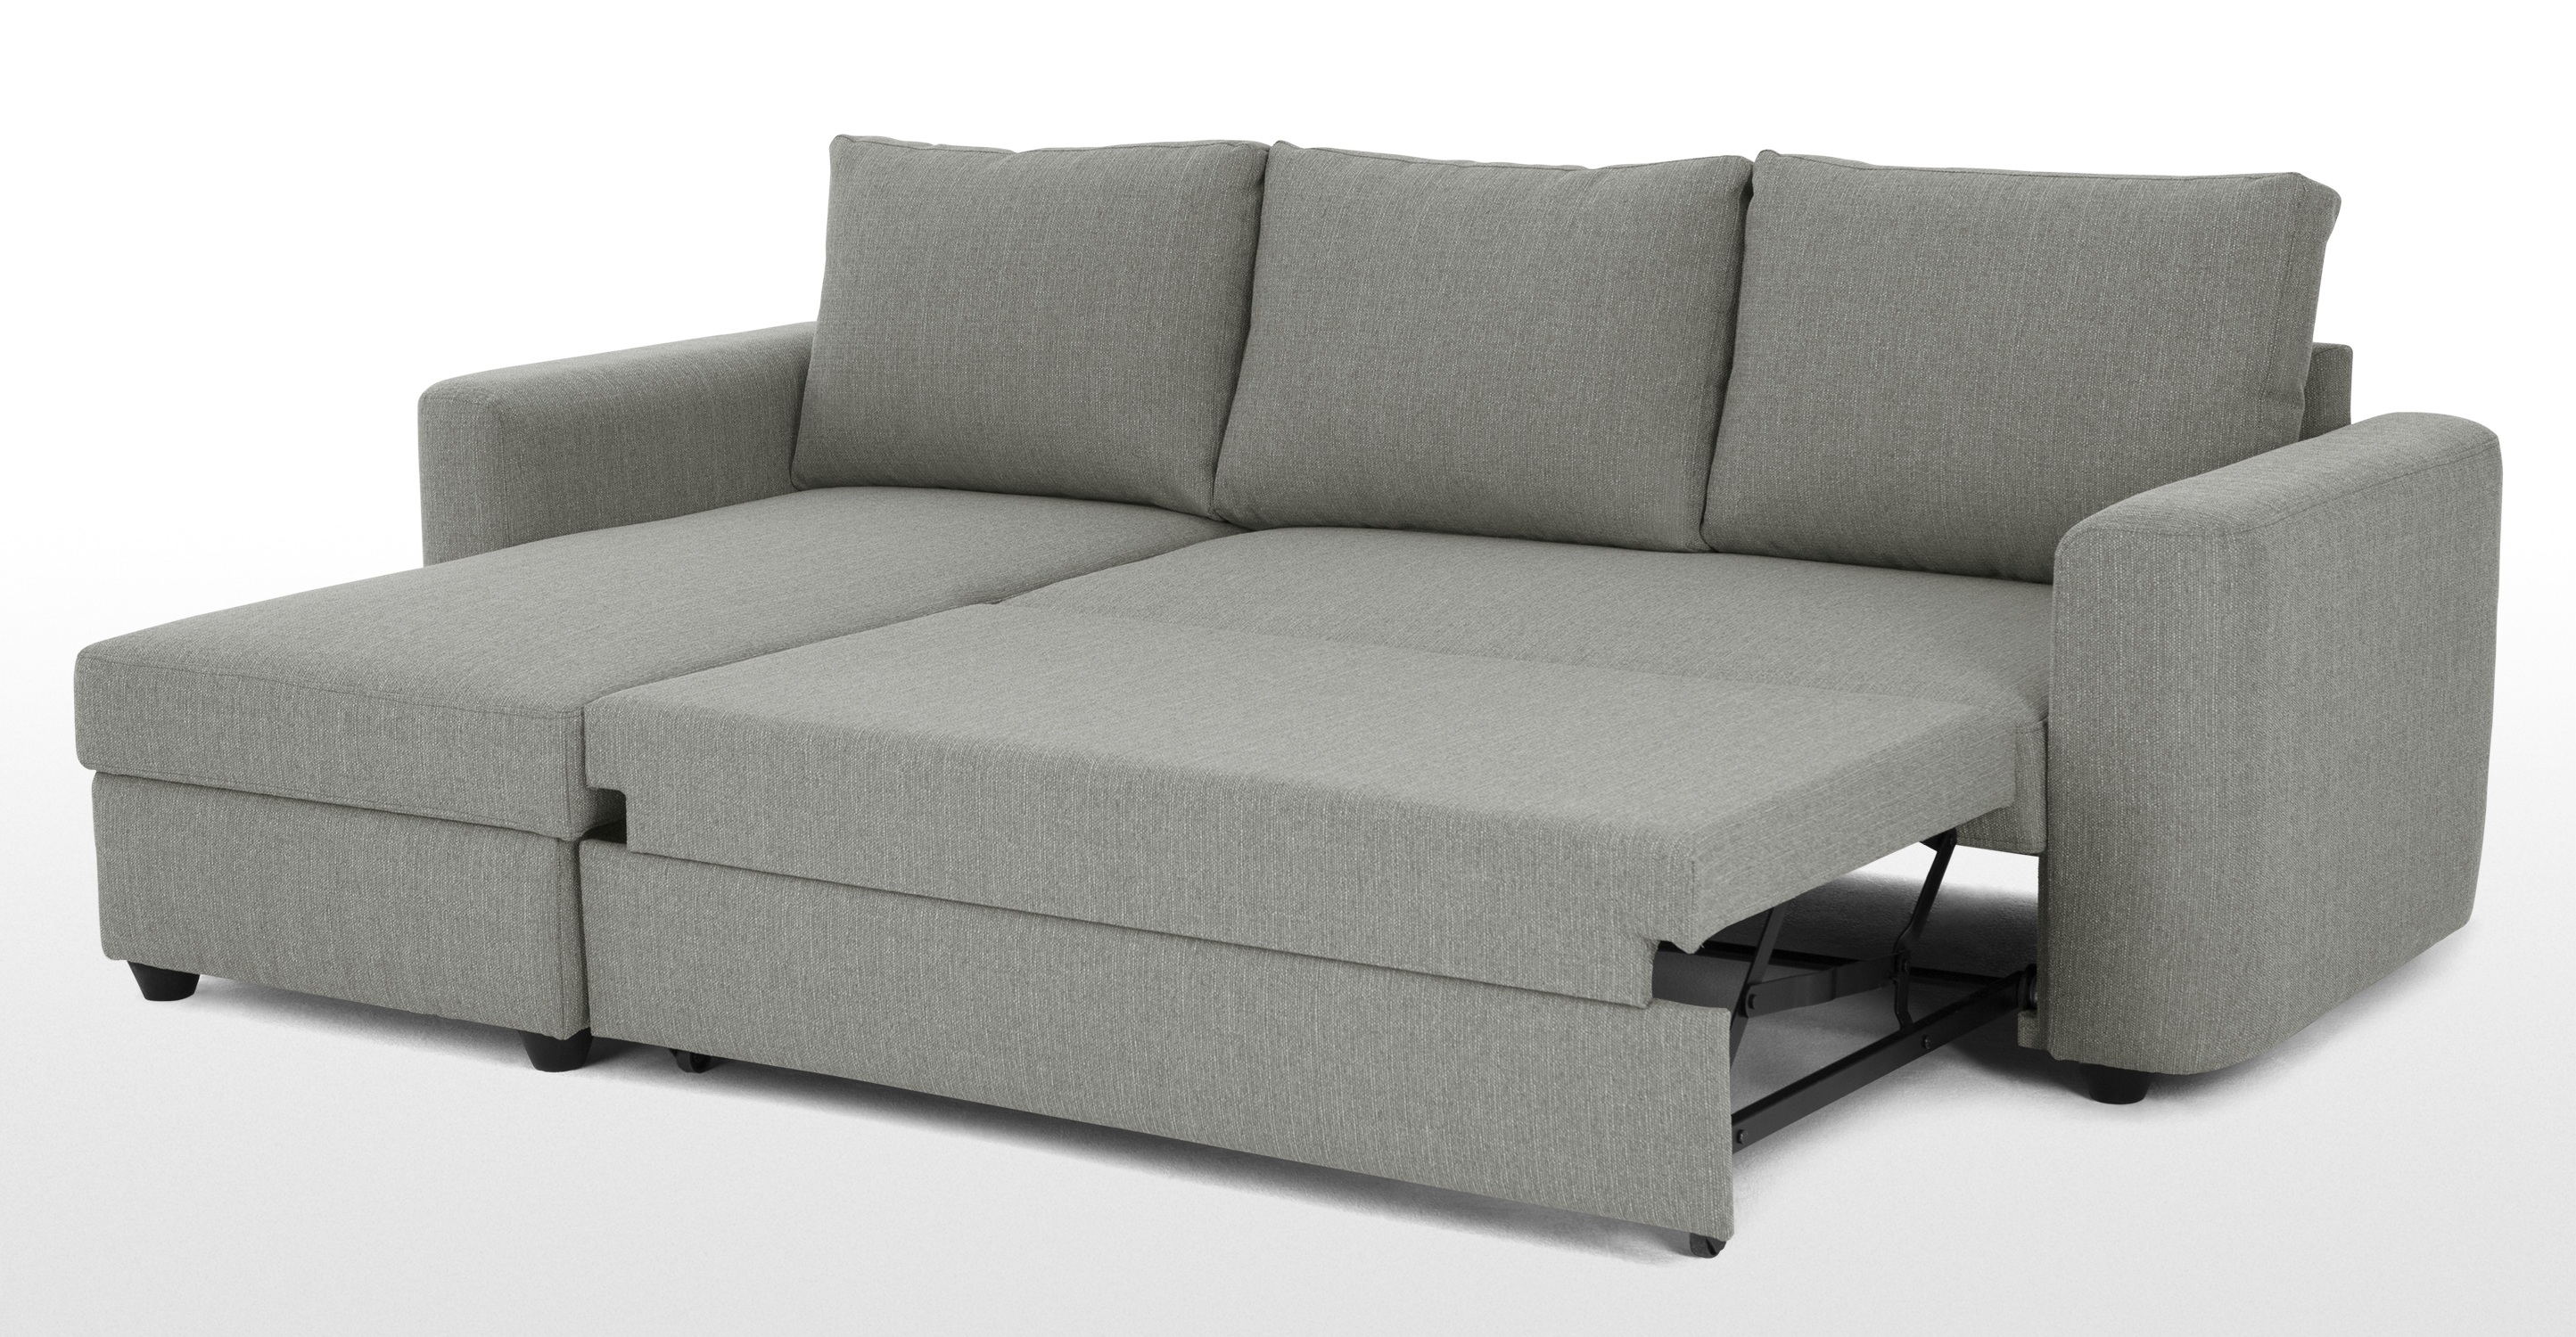 Aidian Corner Storage Sofa Bed Silver Grey Made Within Corner Couch Bed (Image 1 of 15)